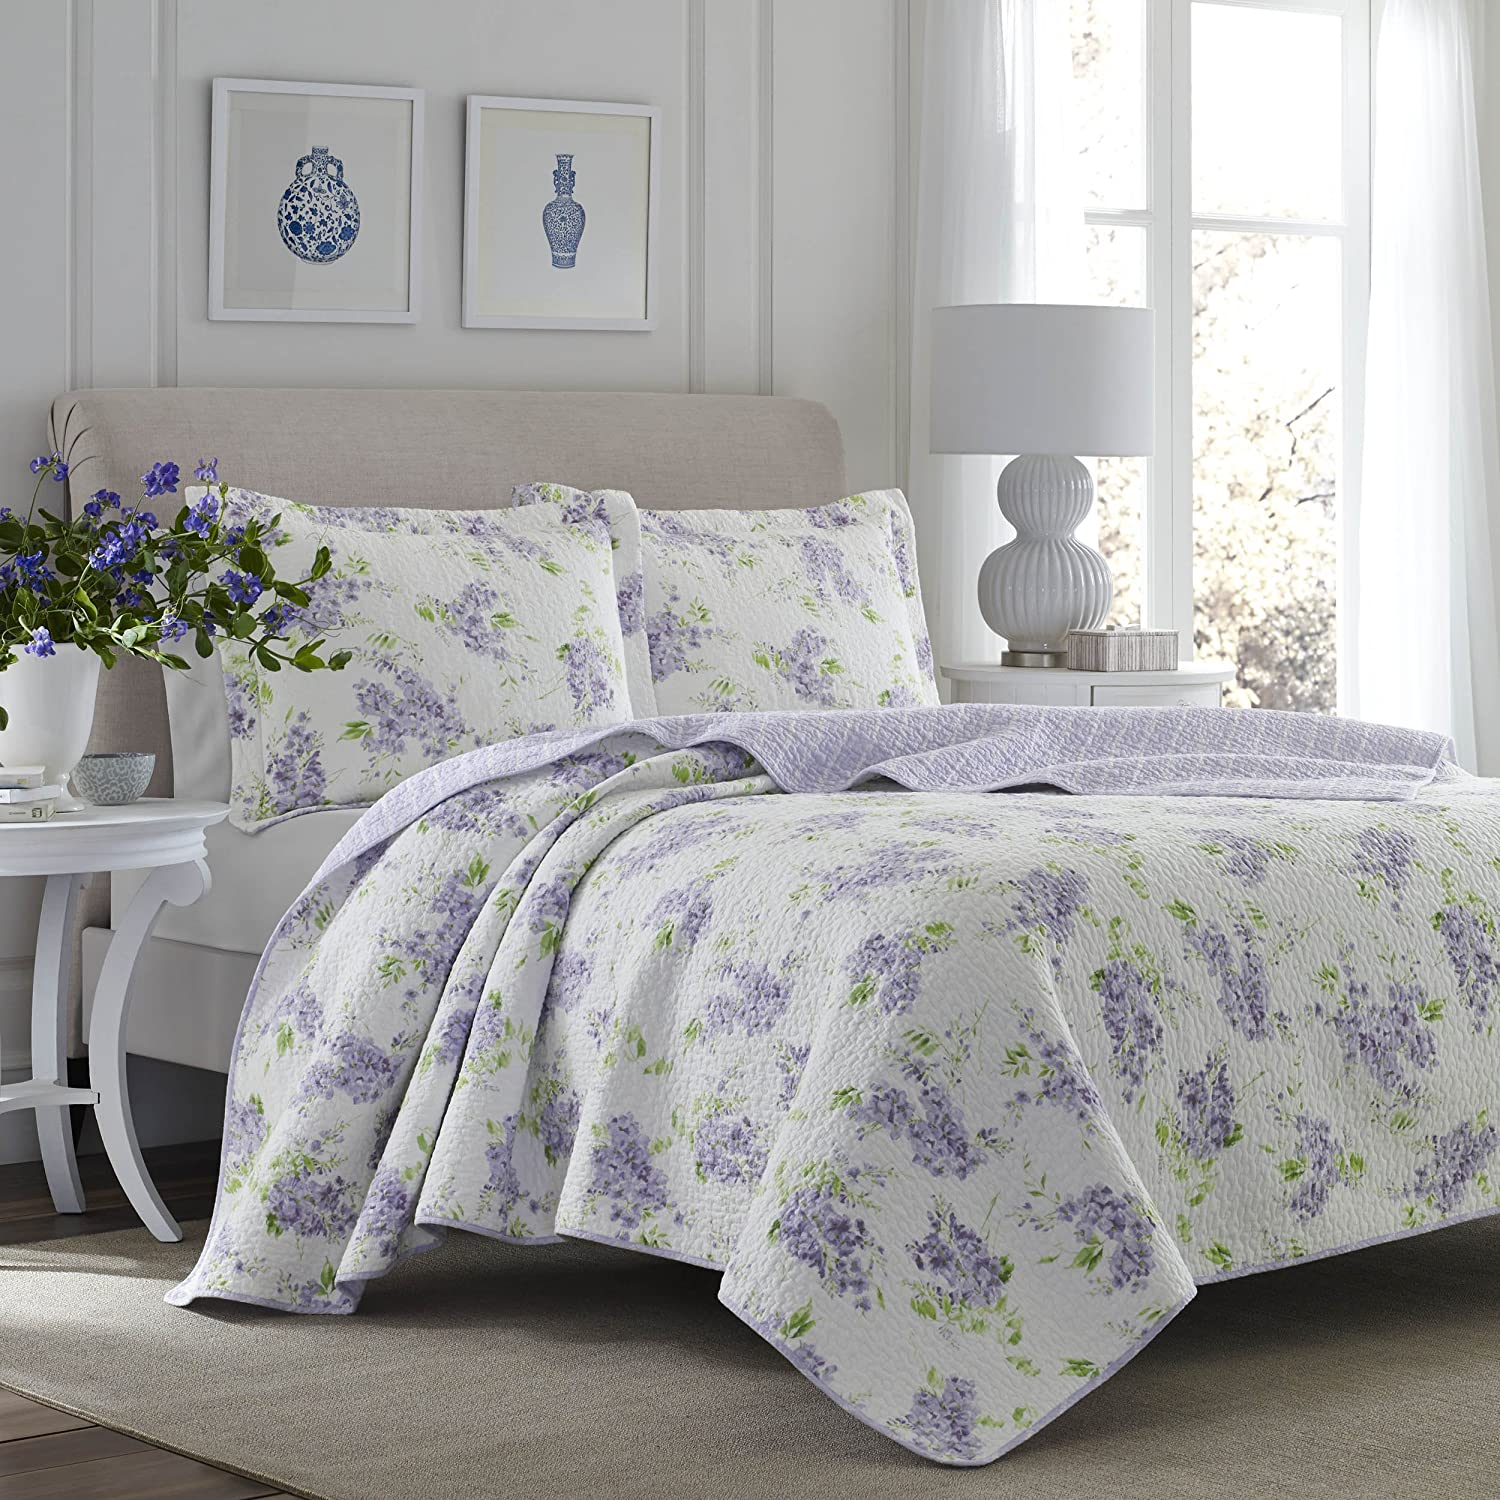 Laura Ashley 221050 Keighley Quilt Set, Twin, Lilac